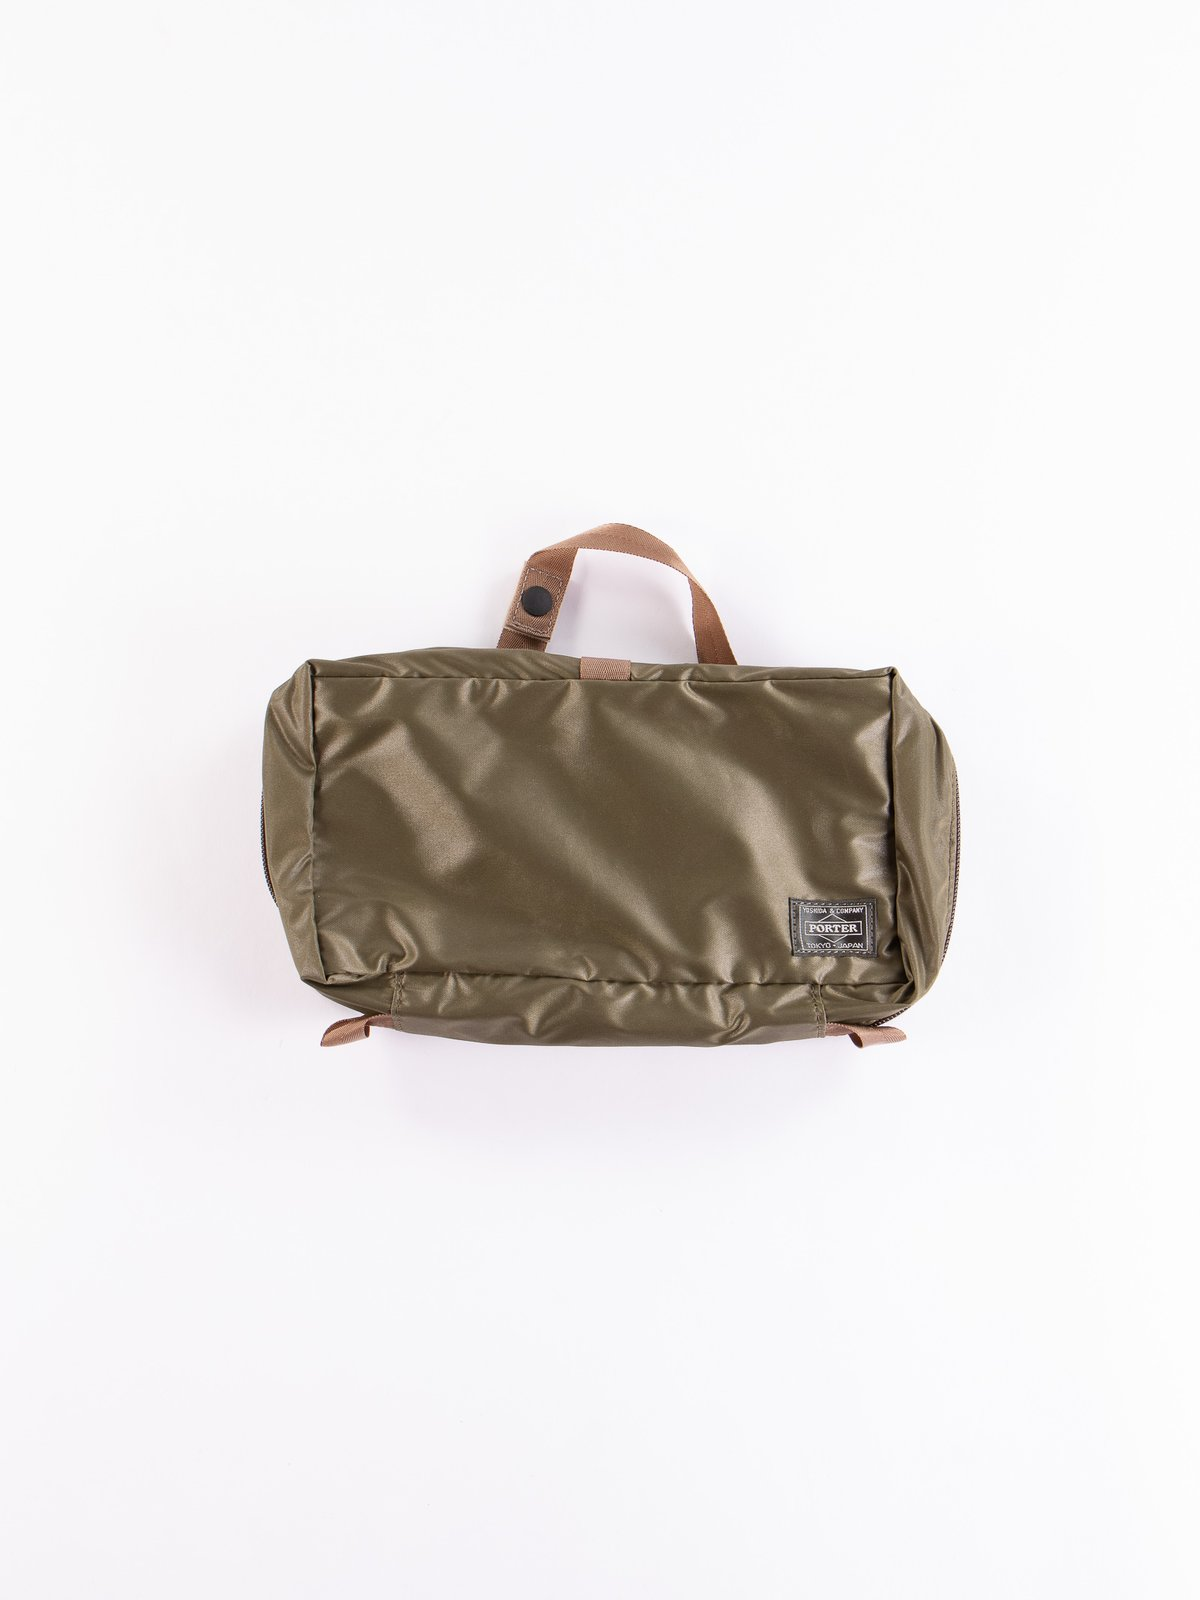 Olive Drab Snack Pack 09811 Cosme Pouch - Image 1